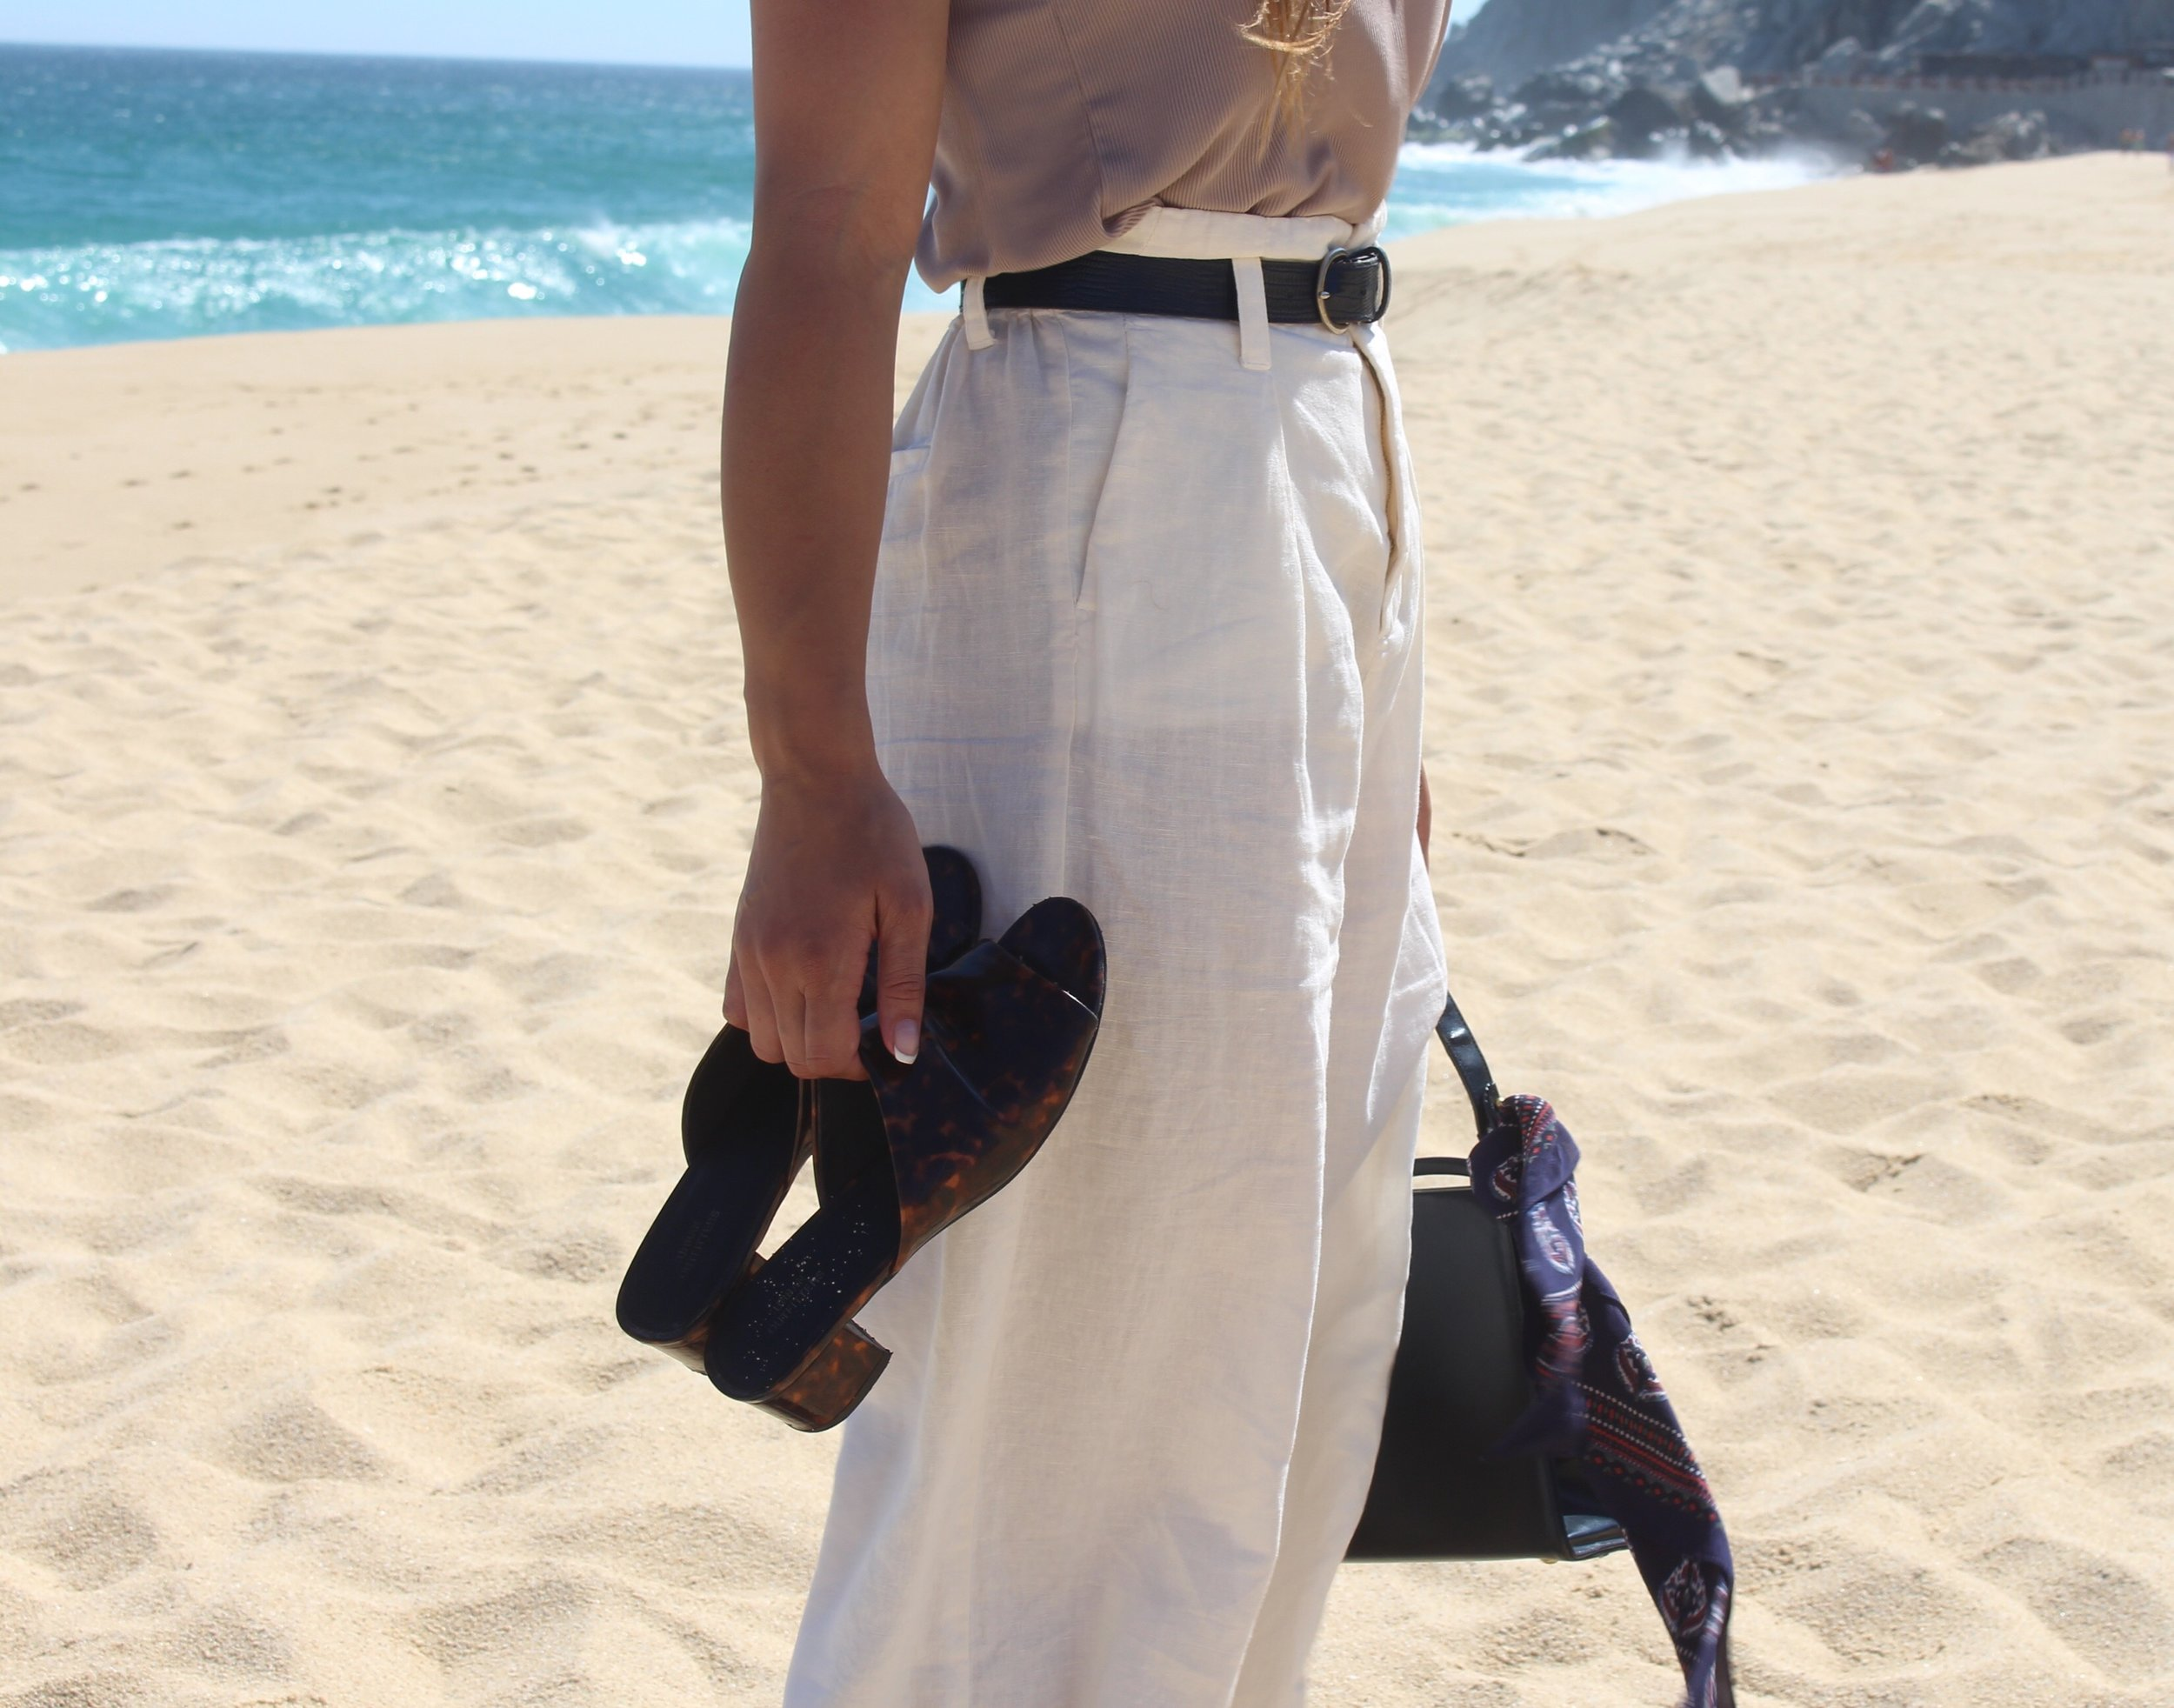 Woman wearing white pants and holding sandals on the beach in Cabo San Lucas Mexico.